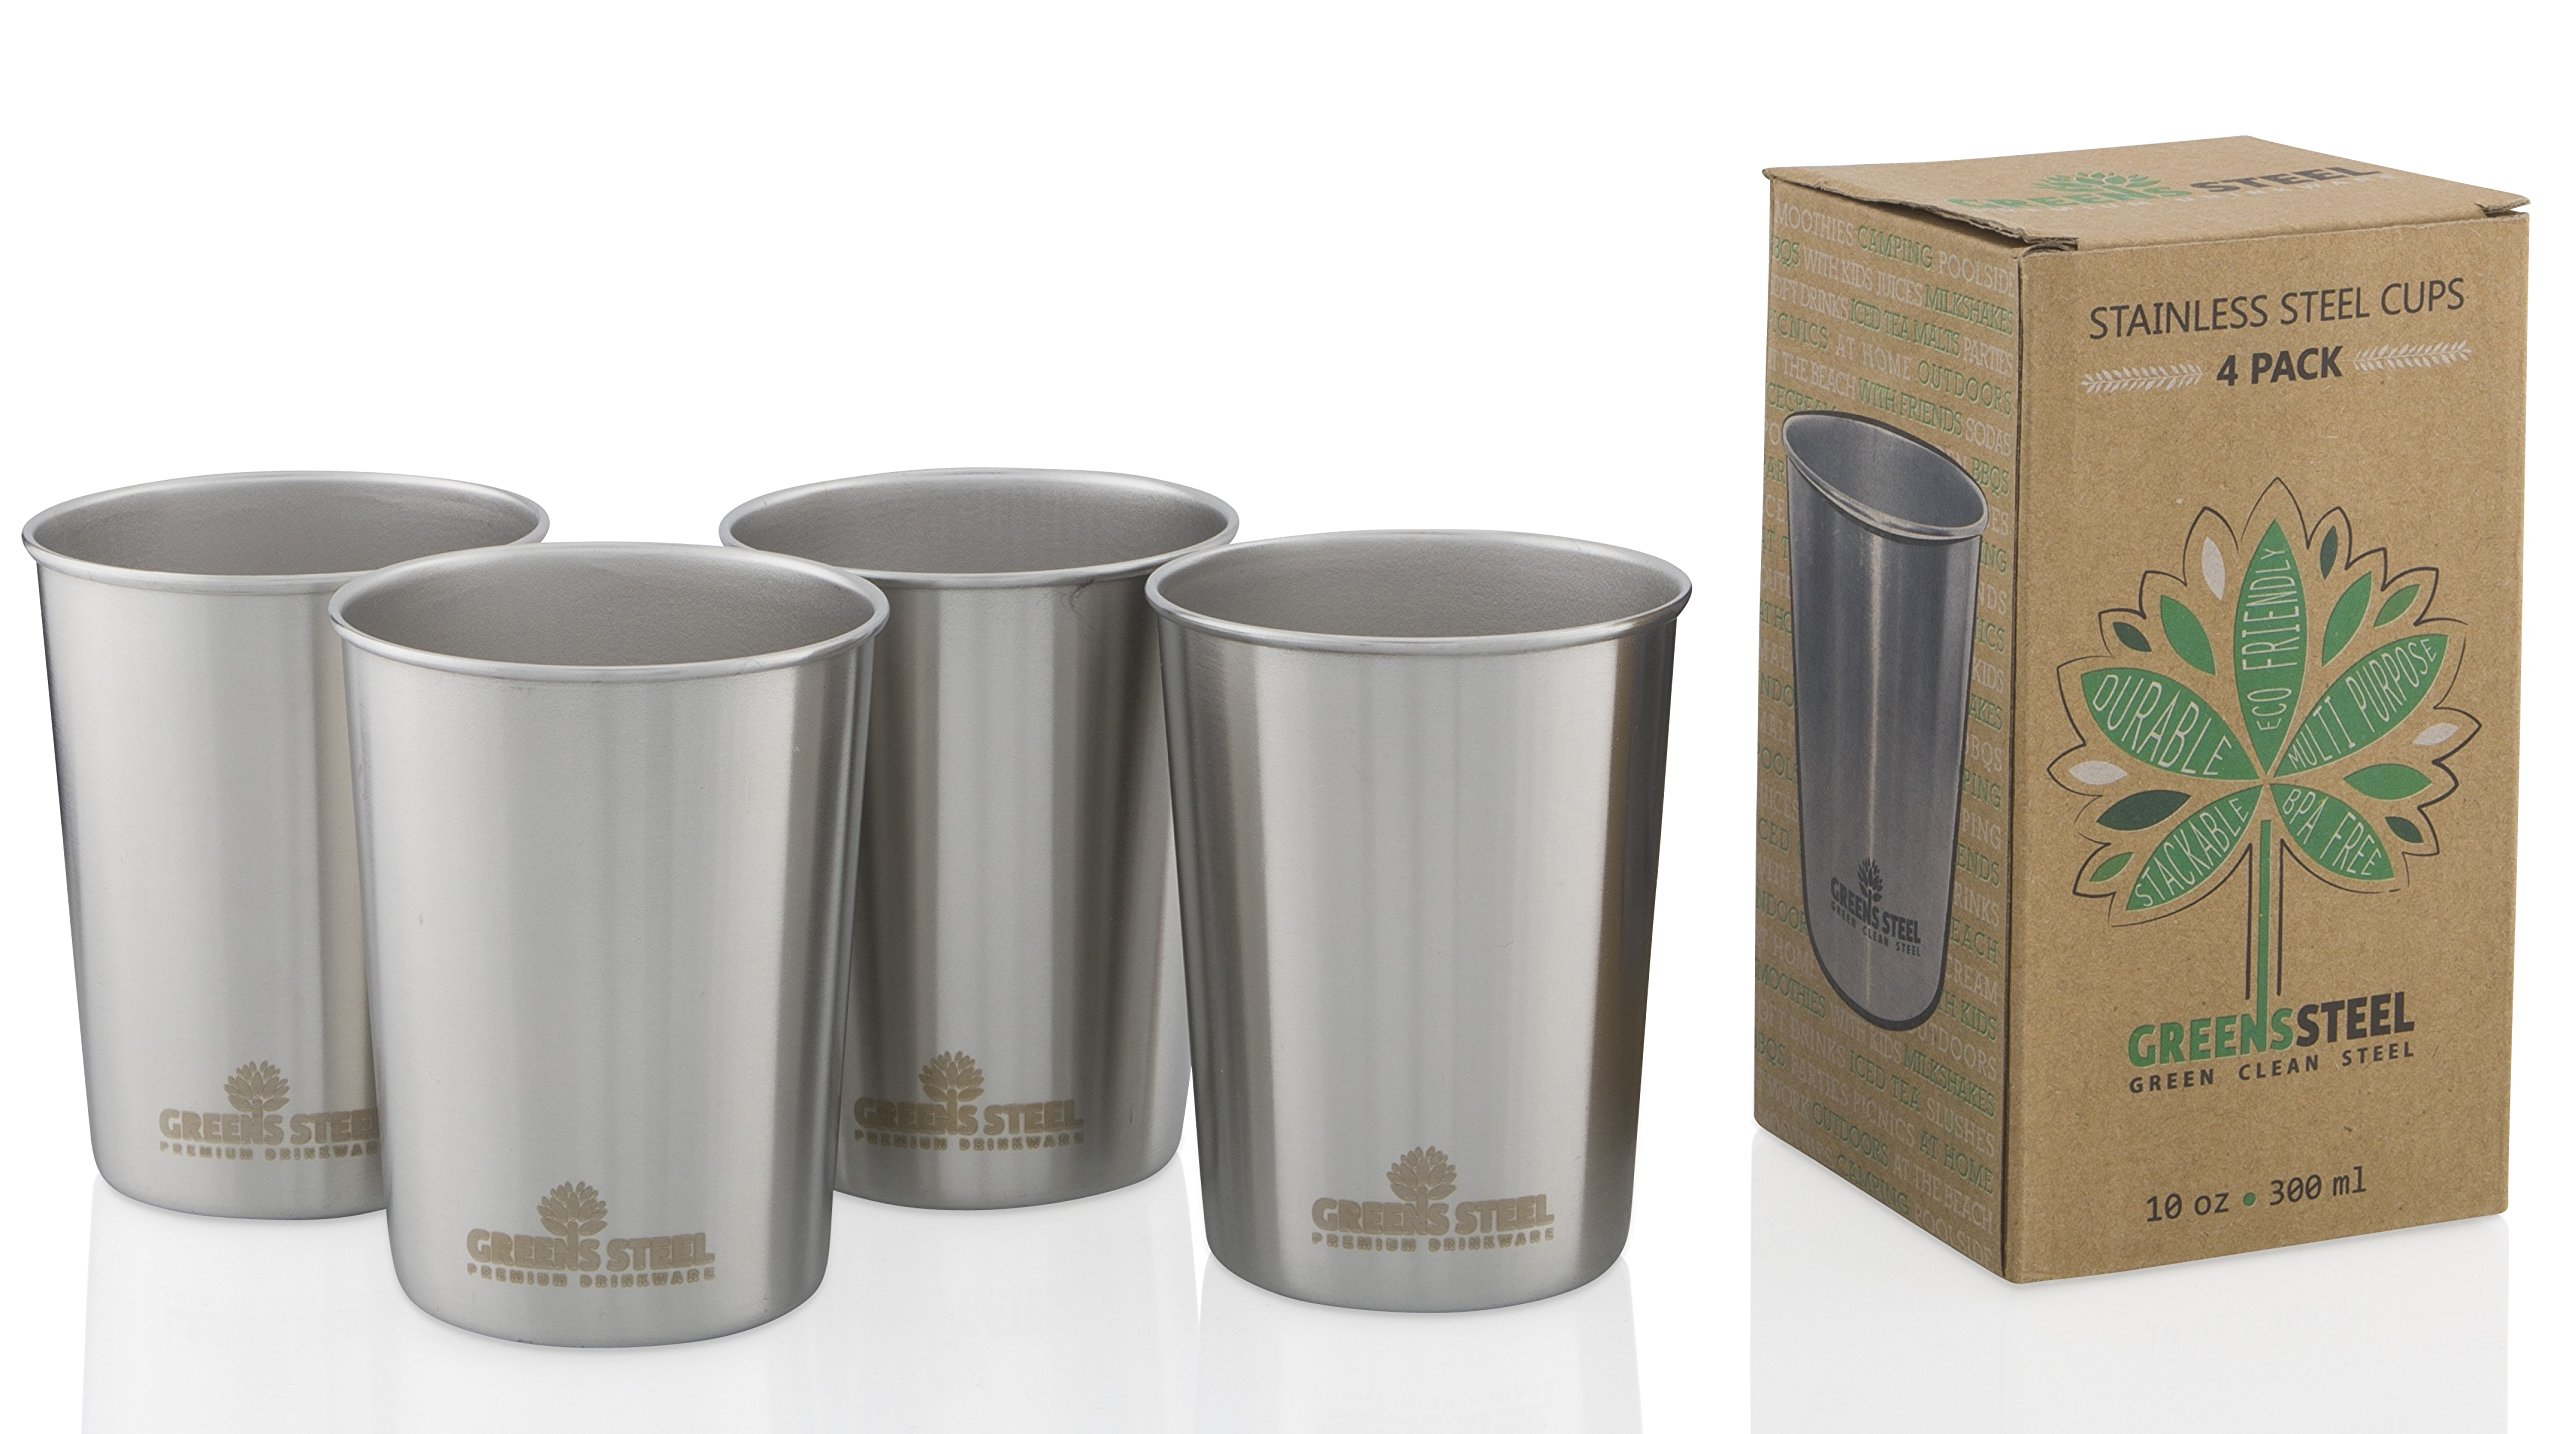 10oz Stainless Steel Cups - Metal Cups For Kids - BPA free (4 Pack) by Greens Steel (Image #10)